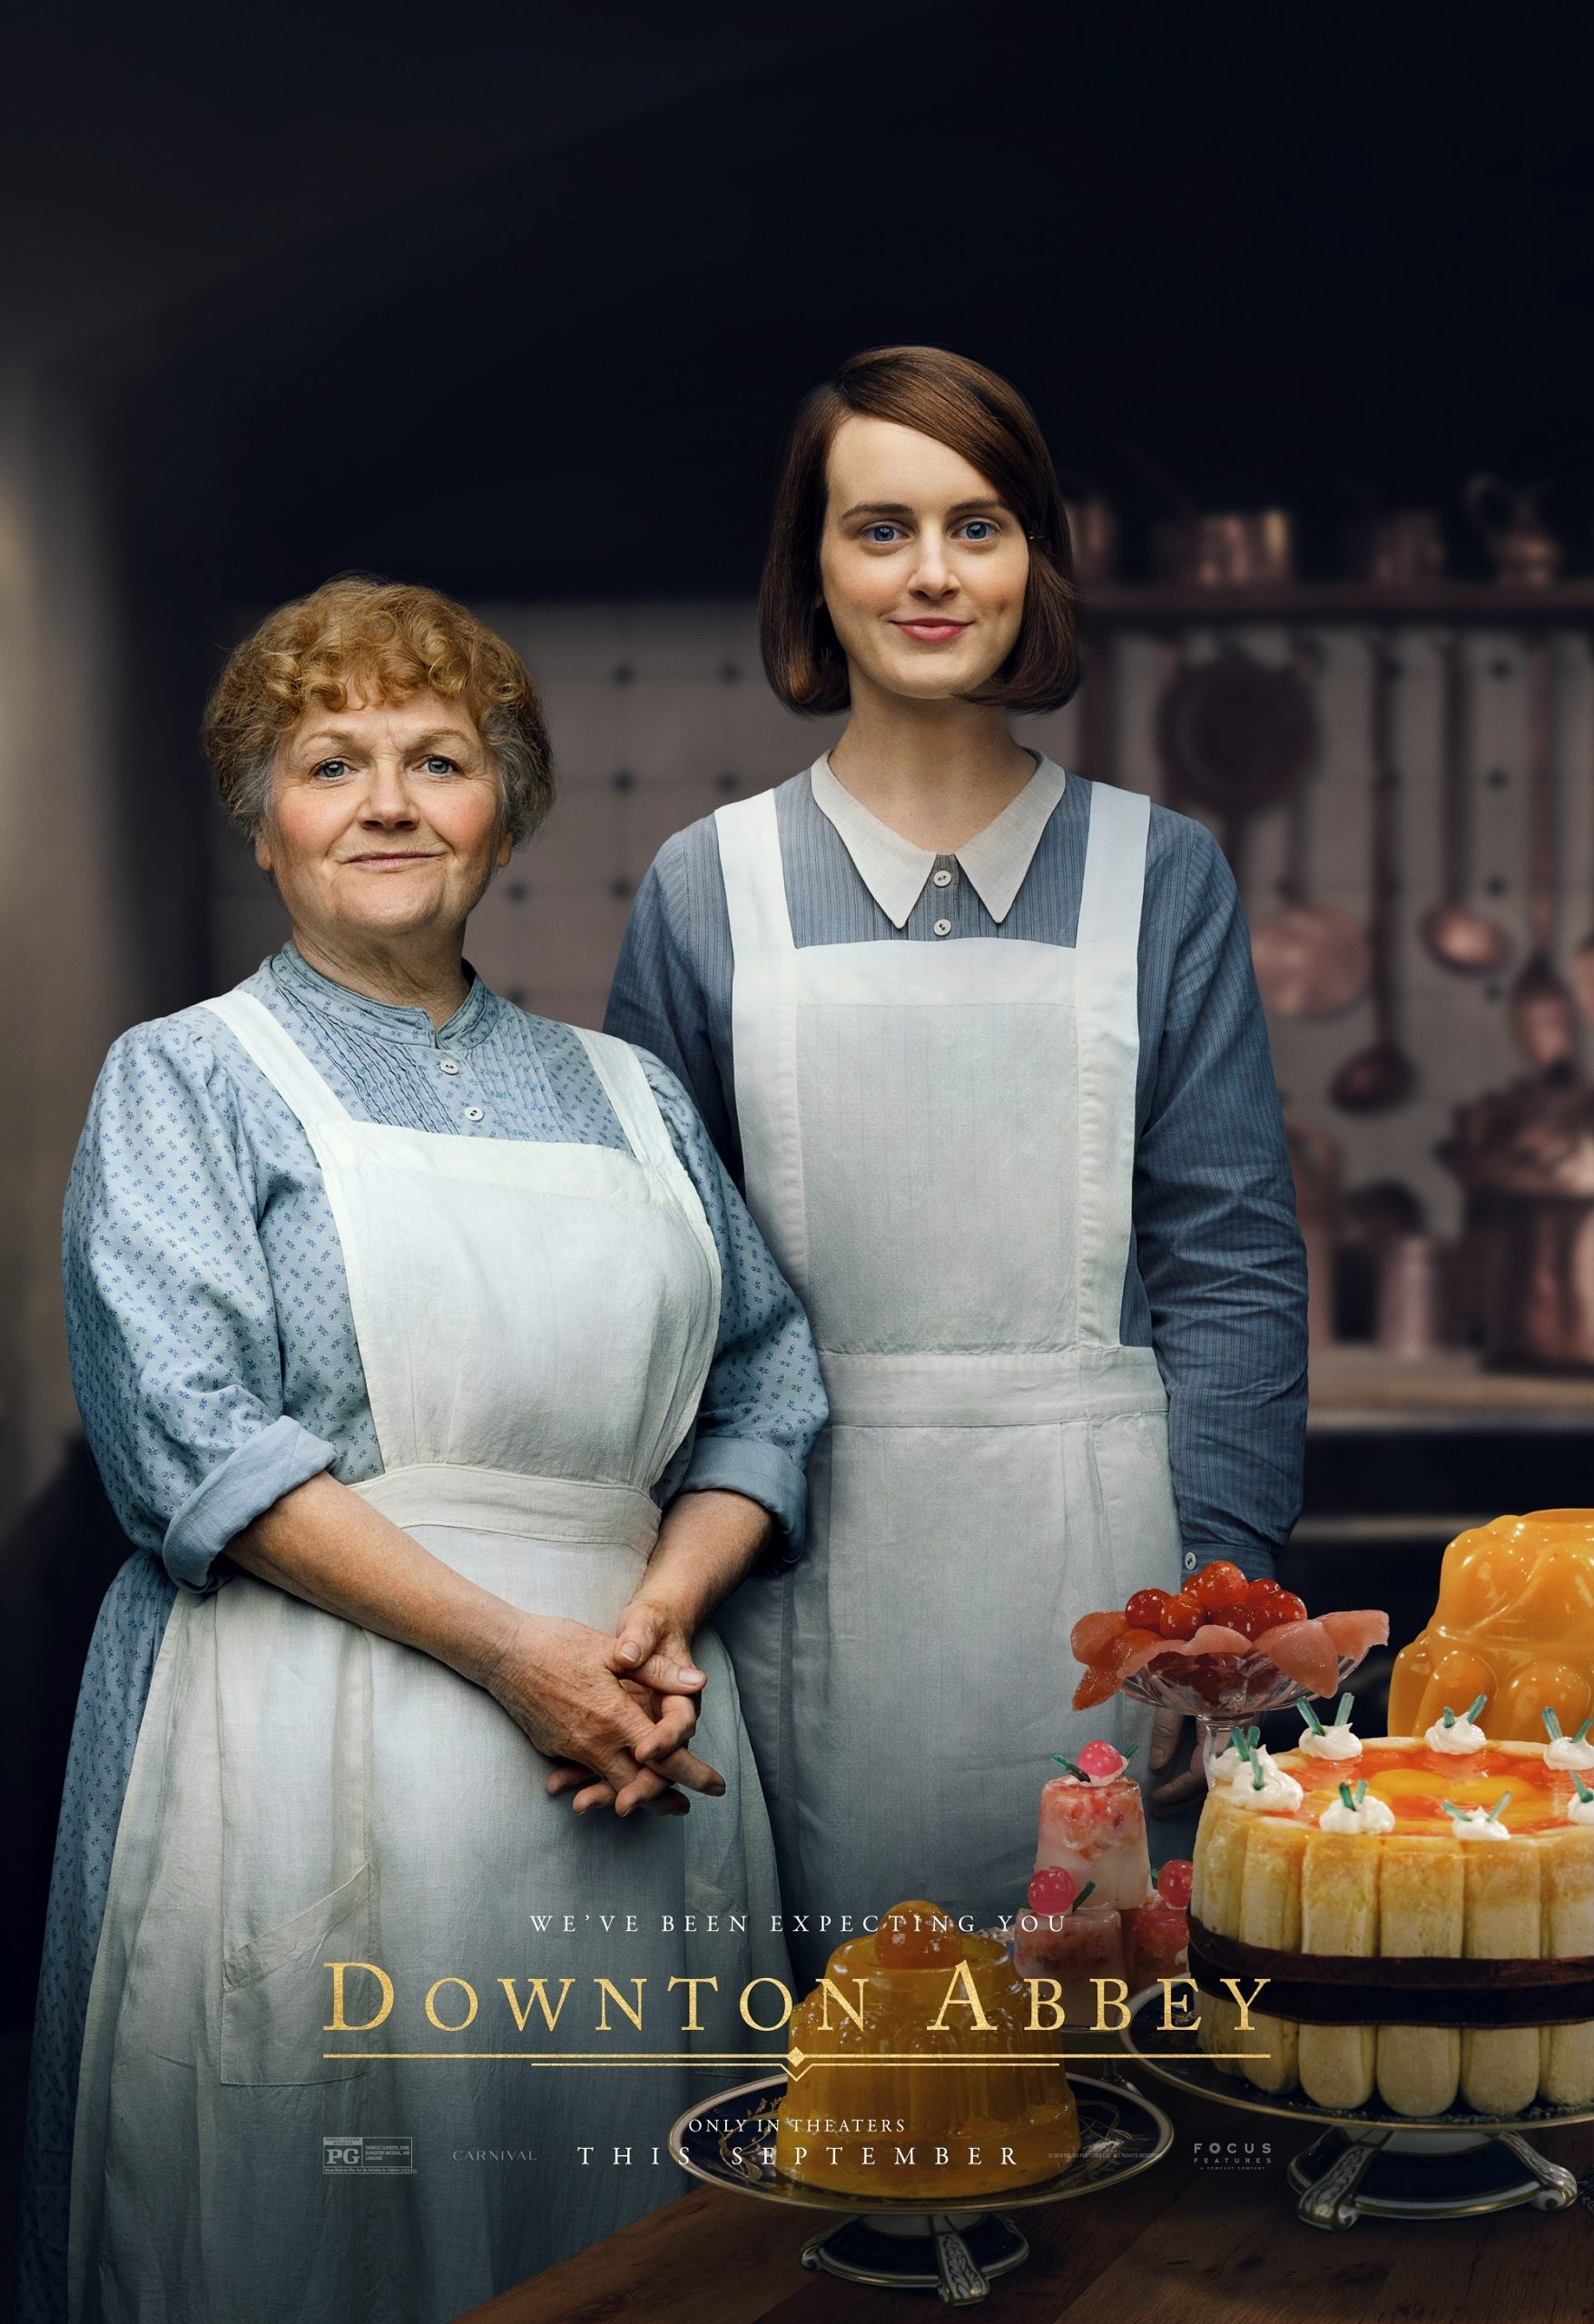 Beryl Patmore and Daisy Maison Downton Abbey The Movie Character Posters